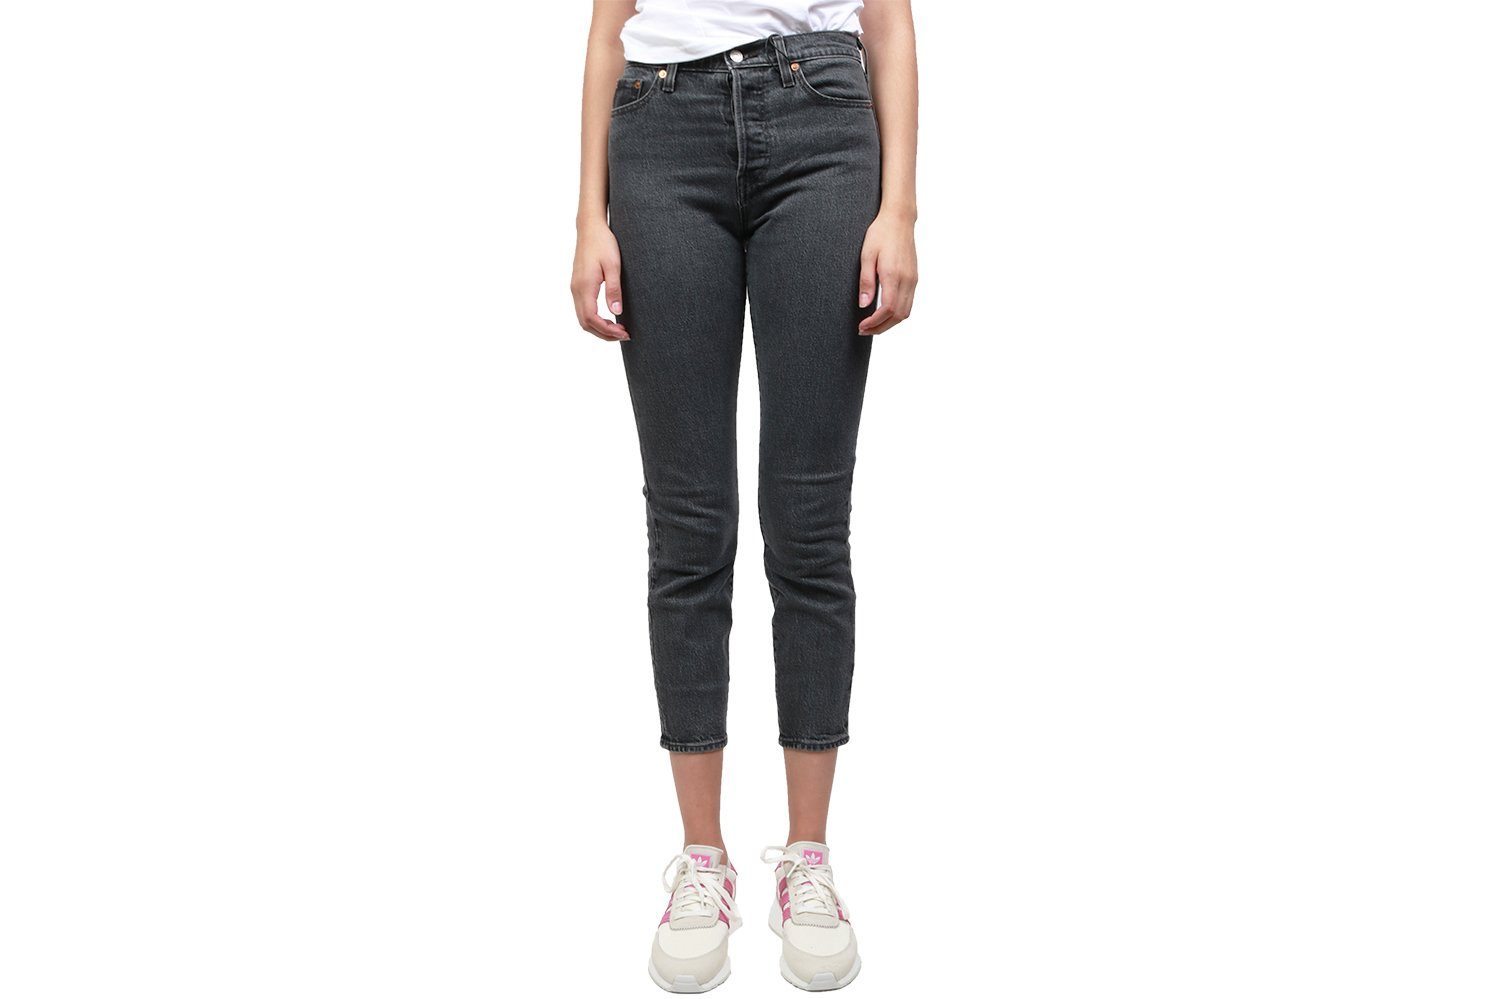 WEDGIE ICON FIT- BITE MY DUST WOMENS SOFTGOODS LEVIS BITE MY DUST 25